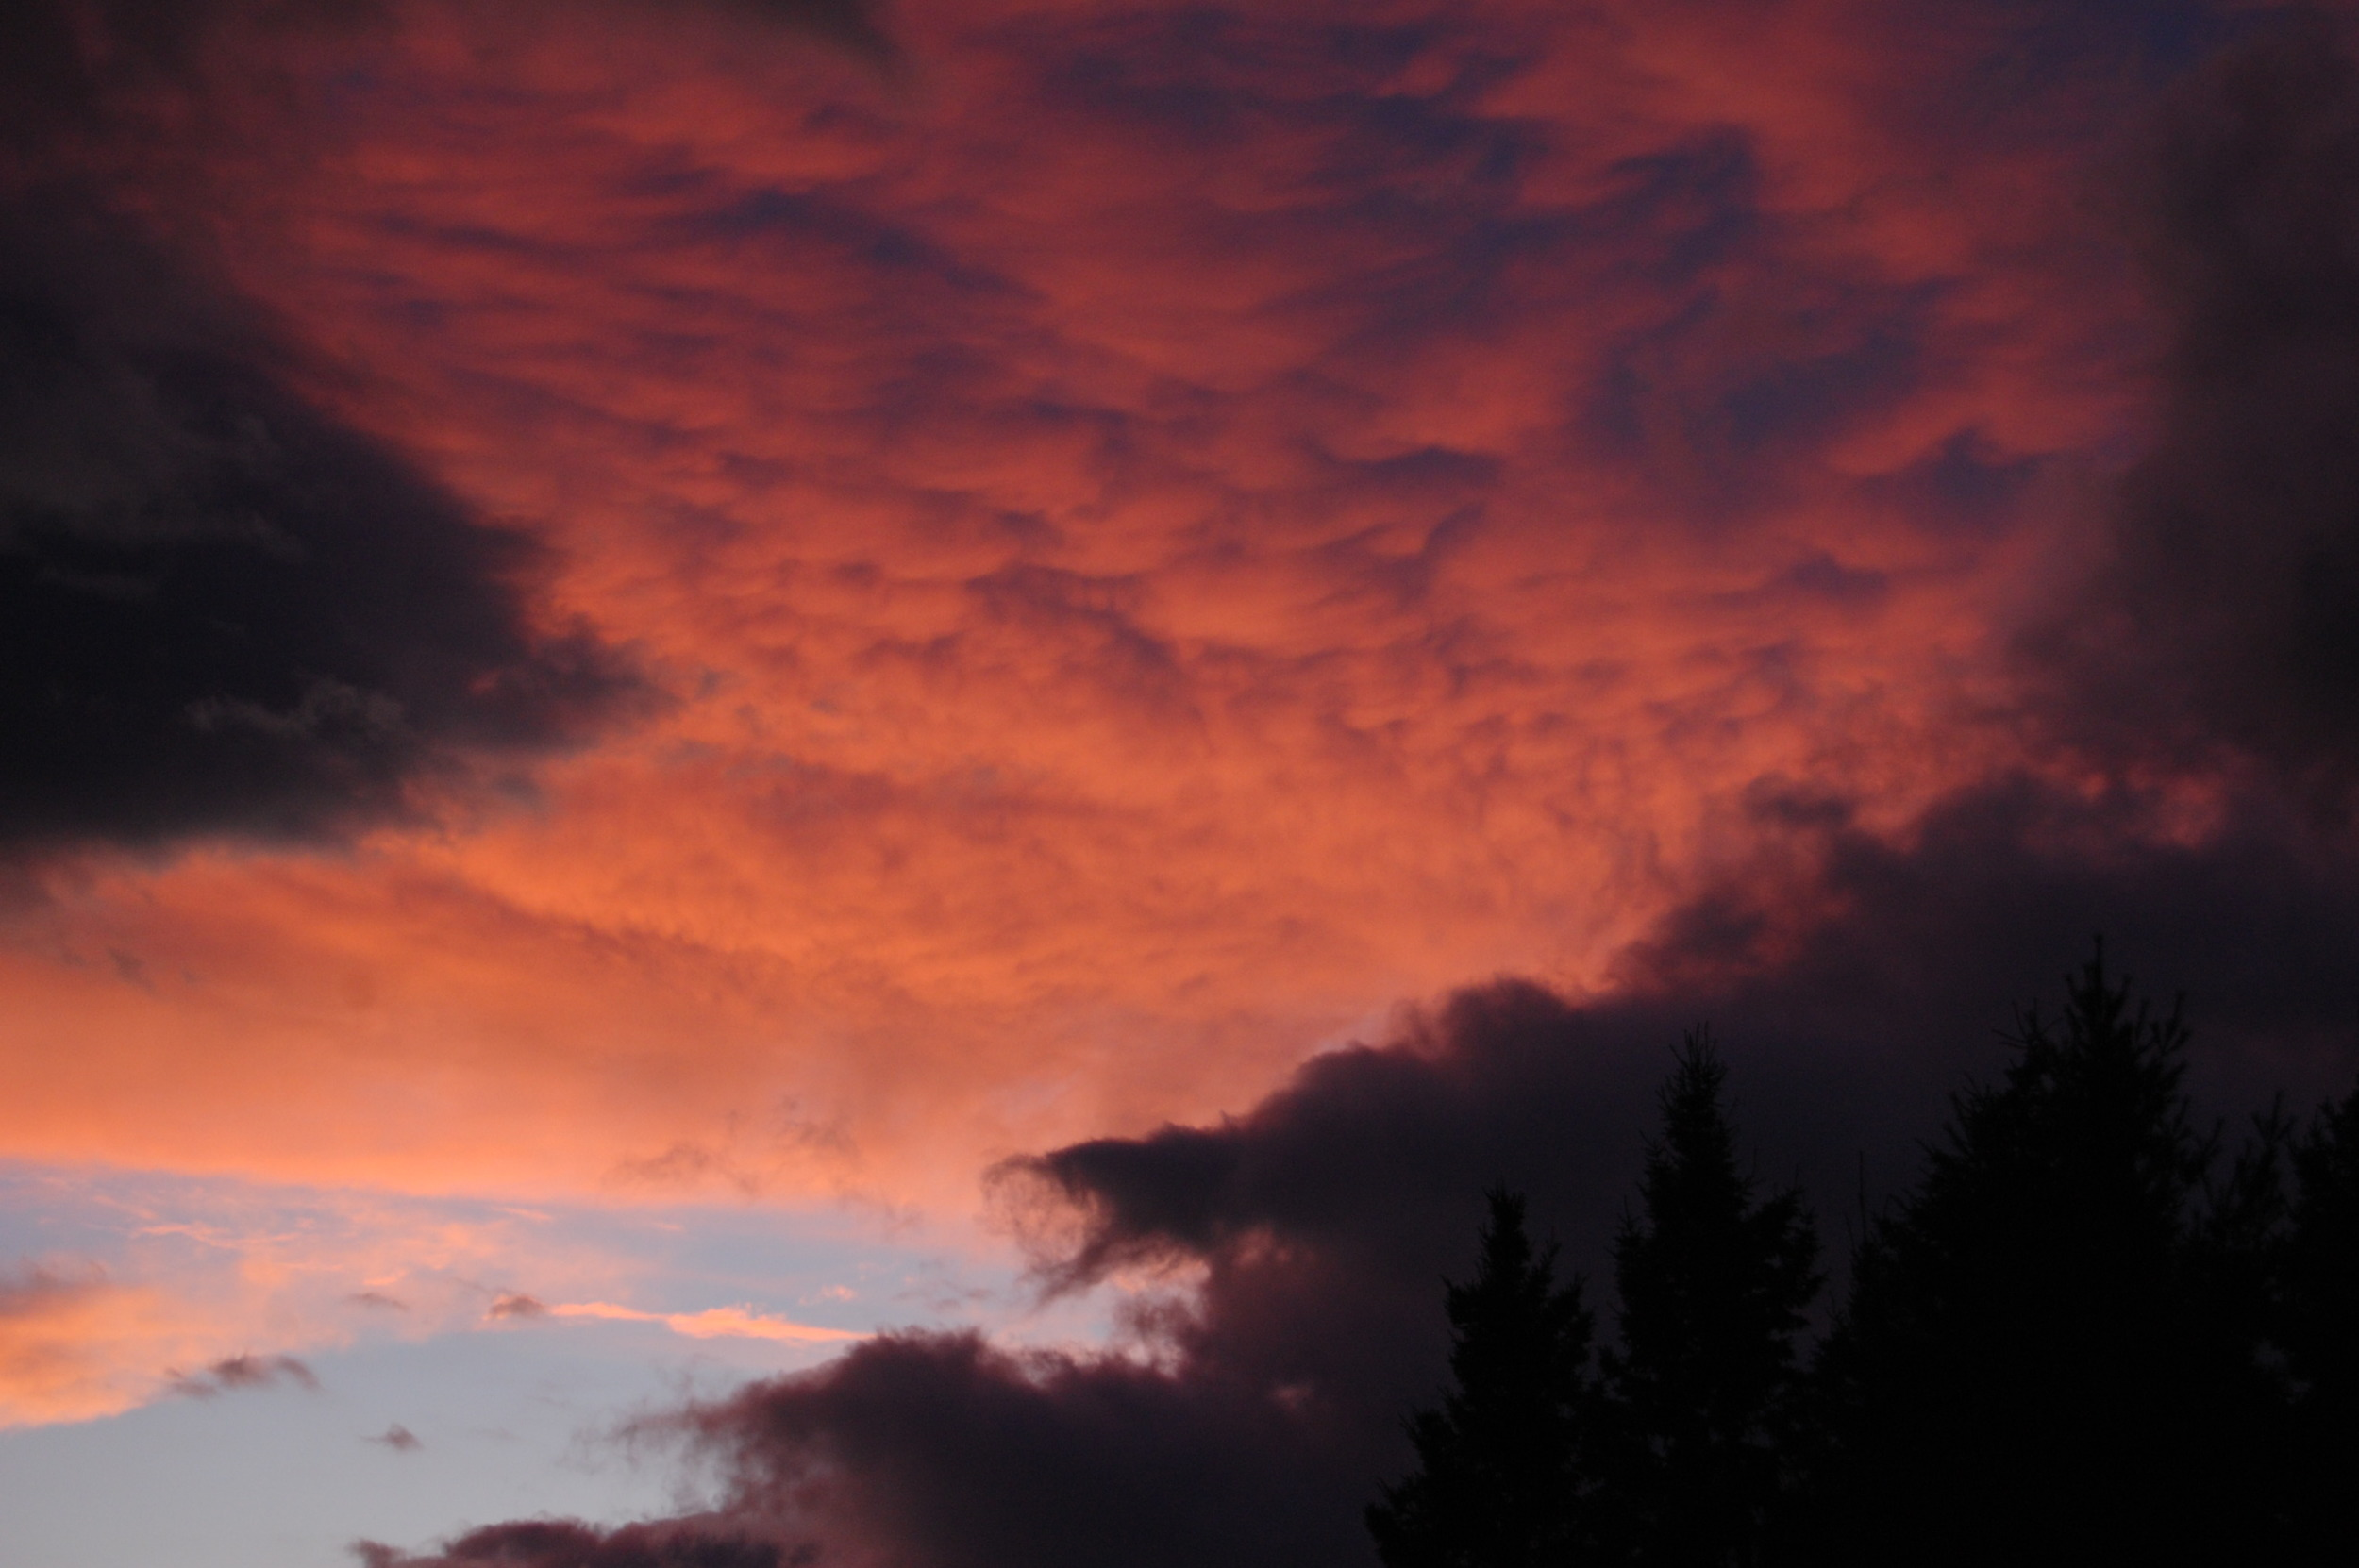 Clouds lit by a setting sun.